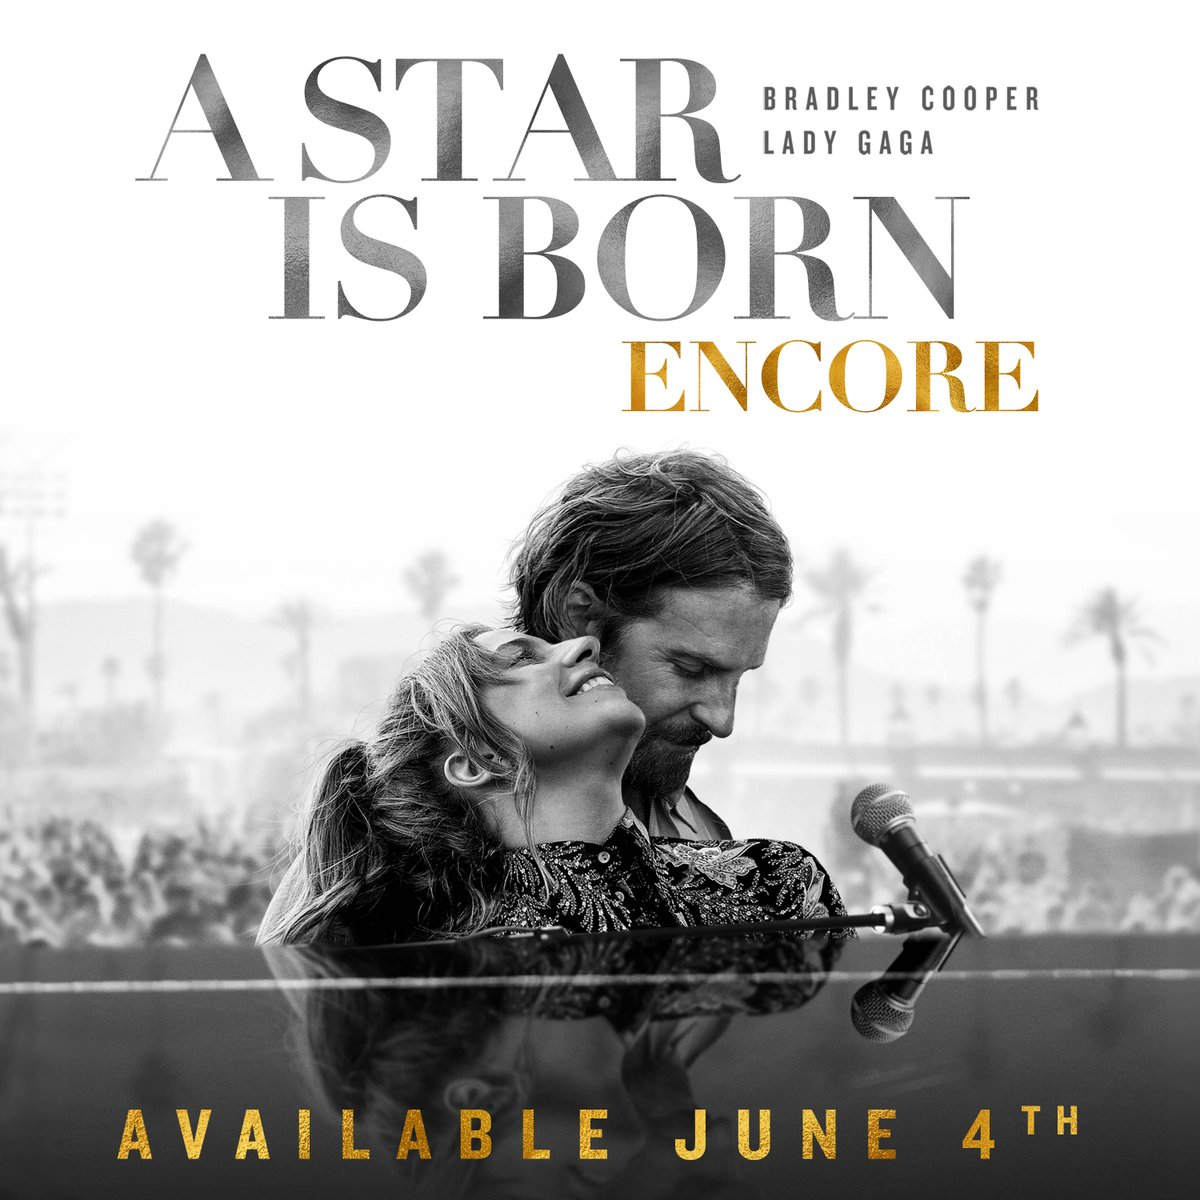 #AStarIsBorn  Encore with extended scenes and never-before-seen performances will be available 6/4.